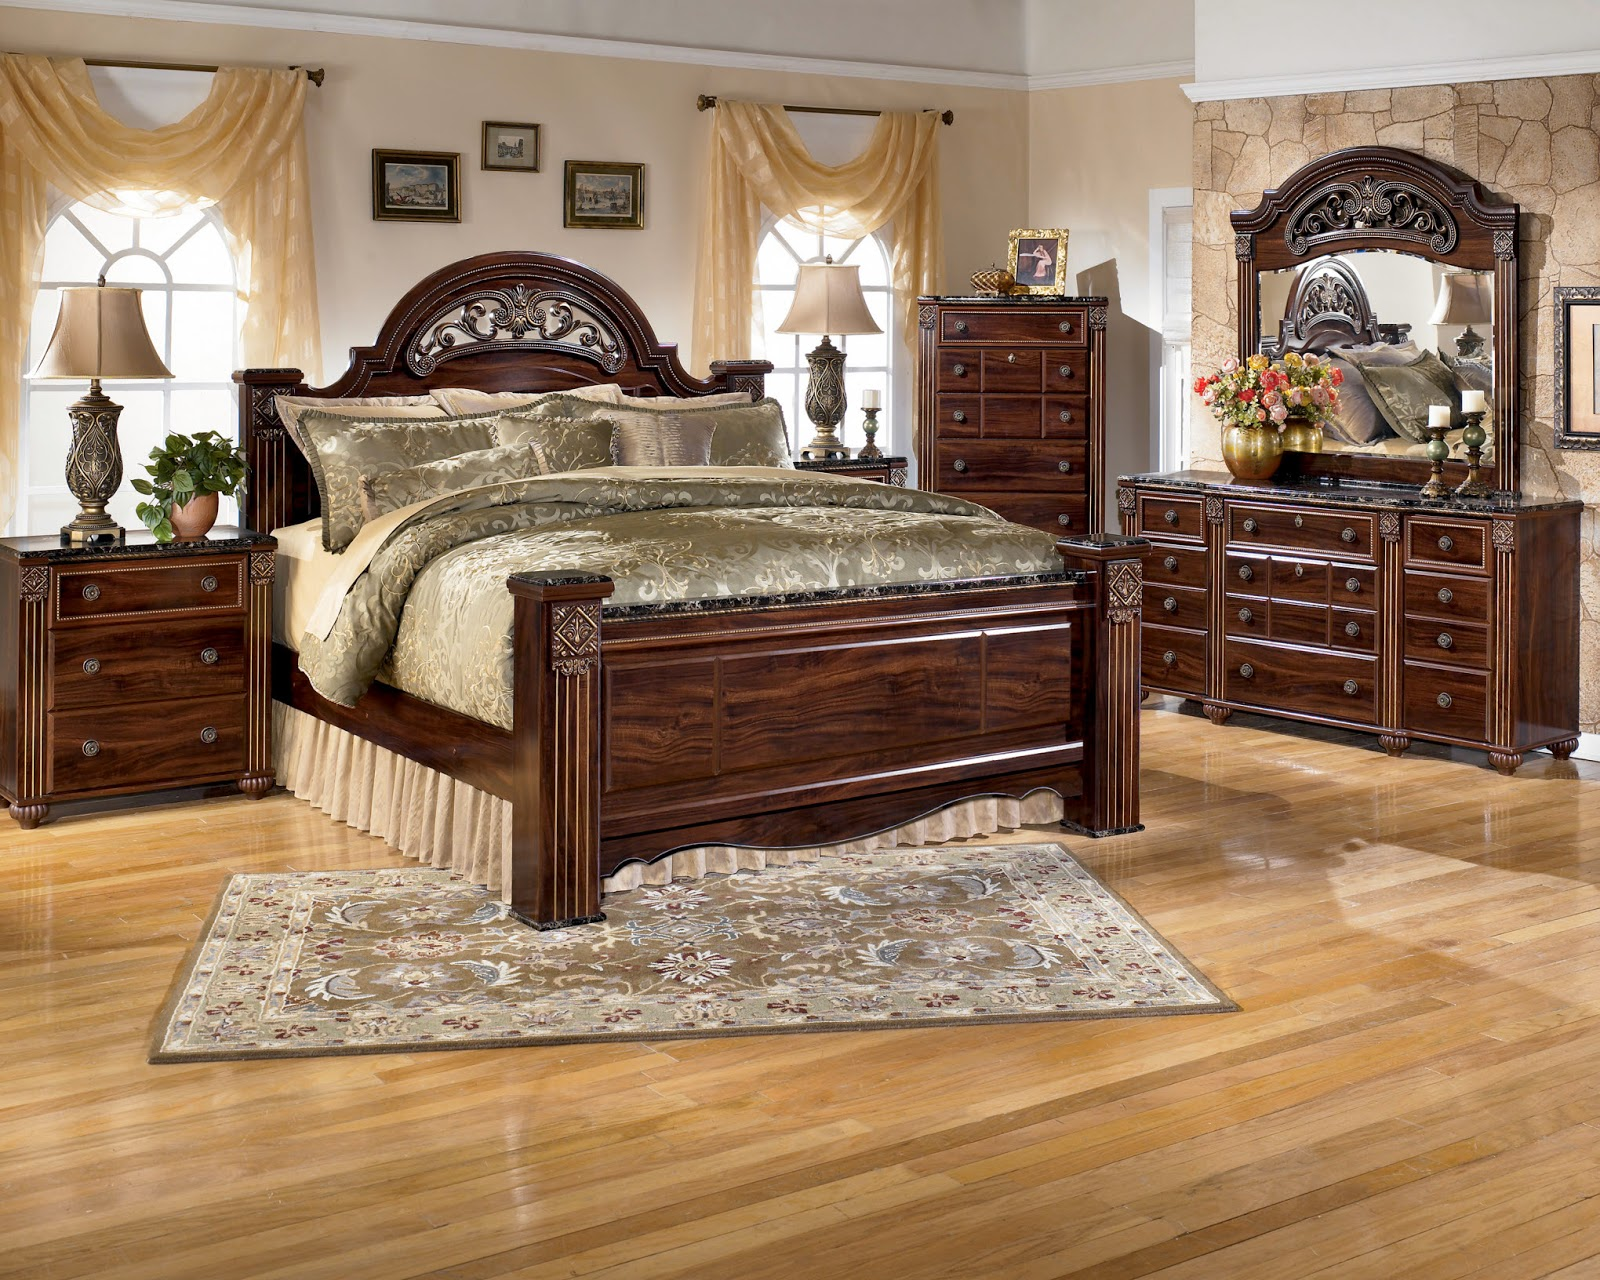 Ashley furniture bedroom sets on sale bedroom furniture for Ashley furniture bedroom sets